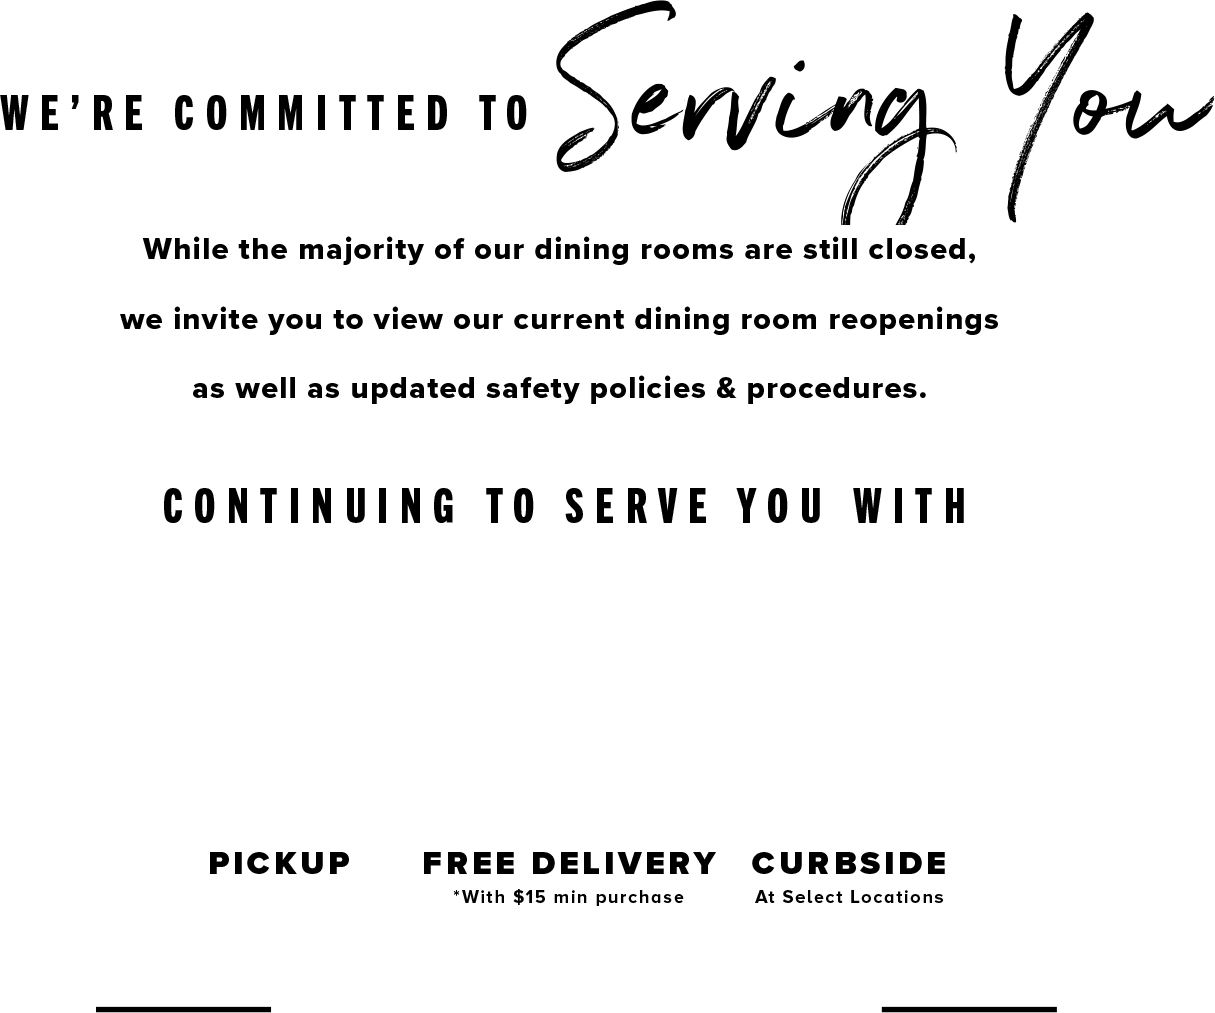 We're committed to serving you. Now back in our dining room! View our current dining room reopenings as well as updated safety policies & procedures.